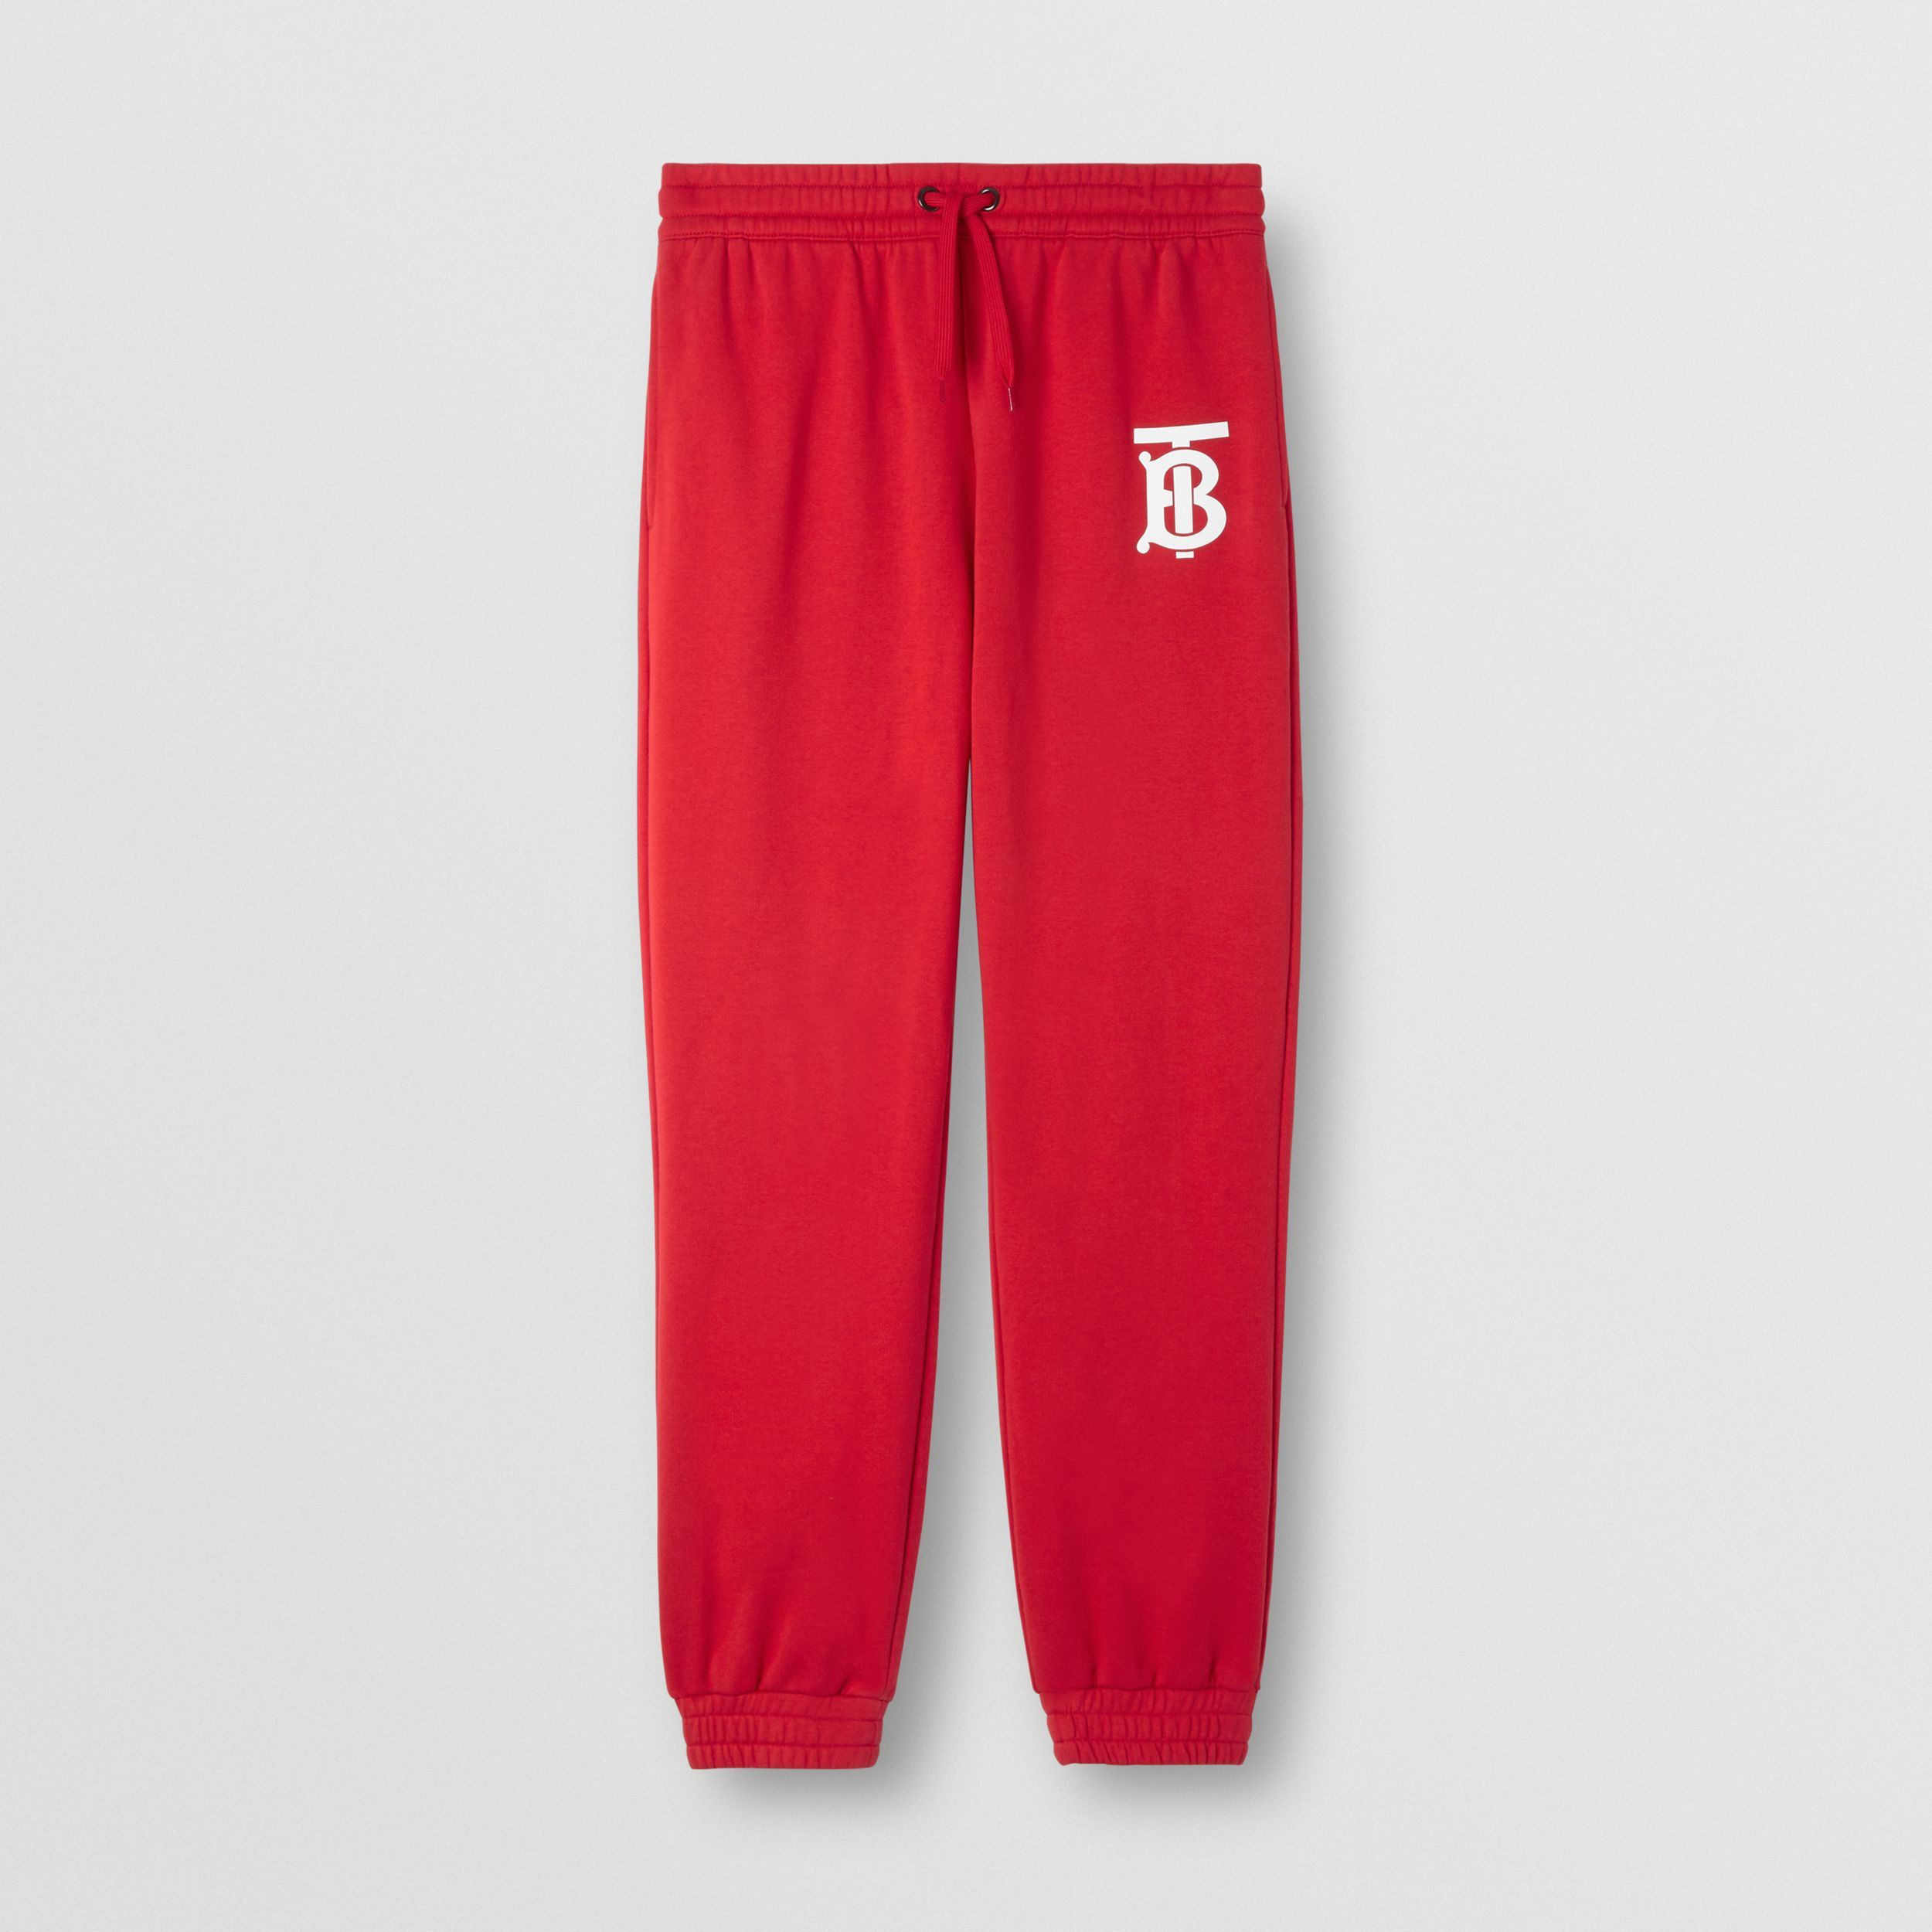 Monogram Motif Cotton Jogging Pants in Bright Red - Men | Burberry - 4